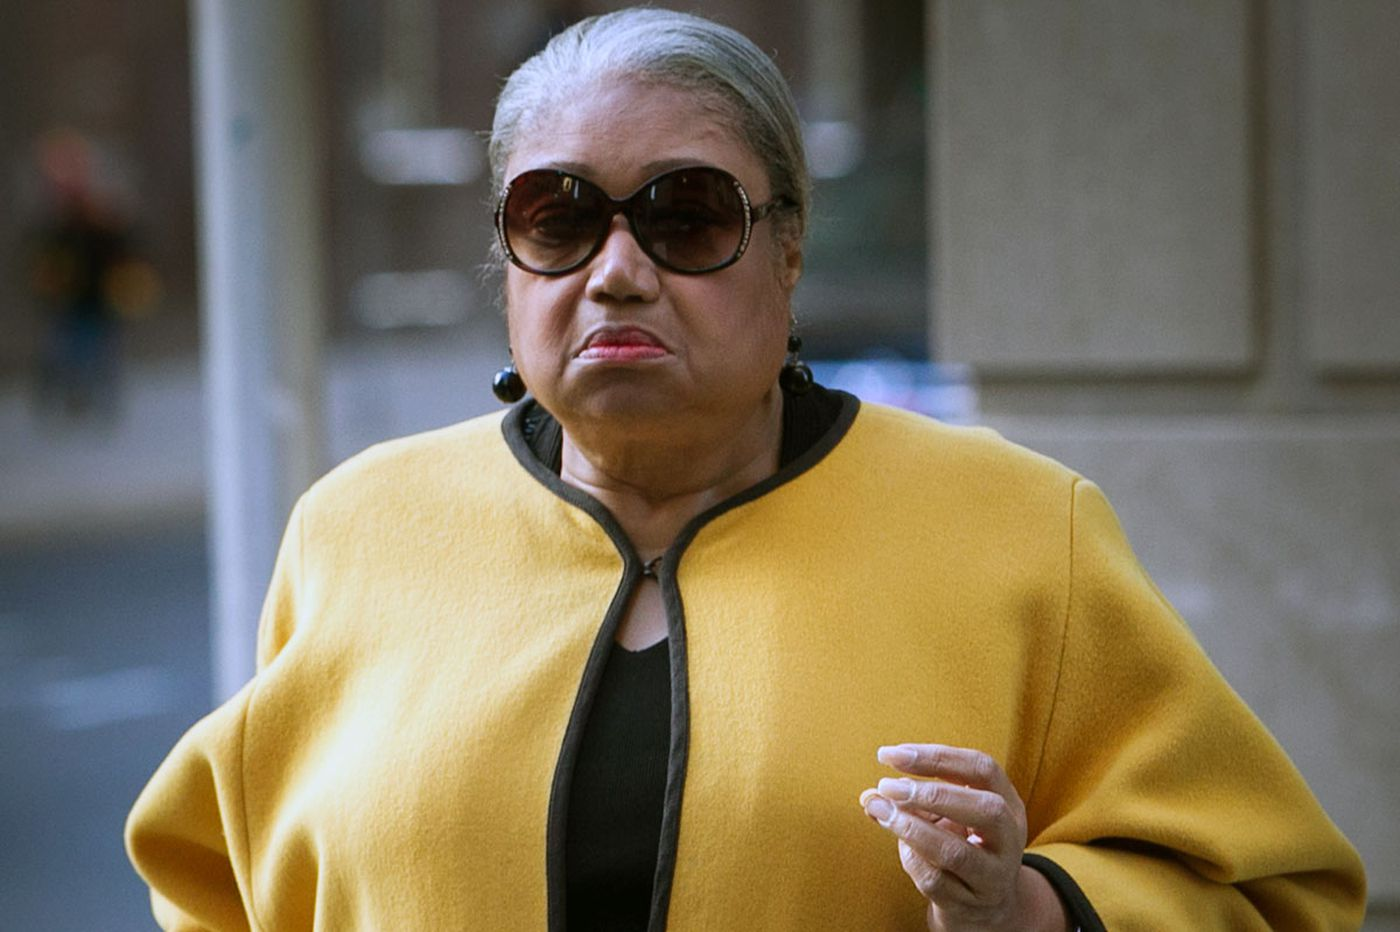 Philly Clout: Convicted ex-Traffic Court judge could lose her pension